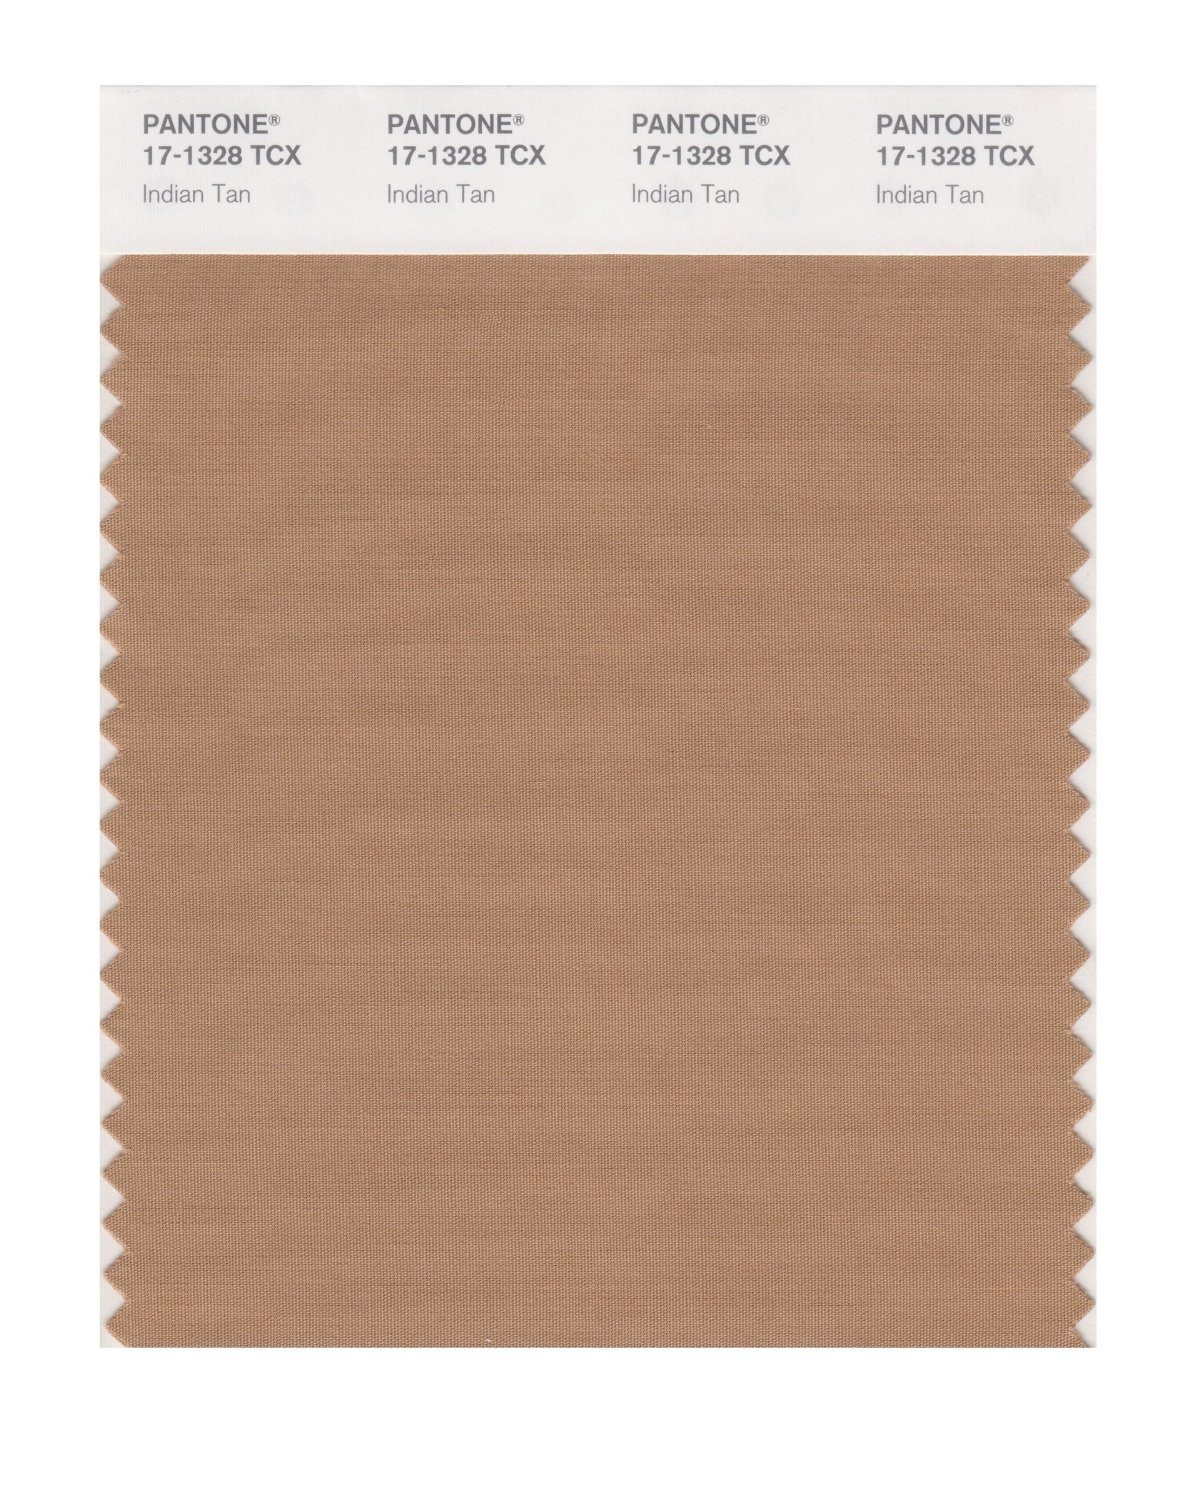 Pantone 17-1328 TCX Swatch Card Indian Tan